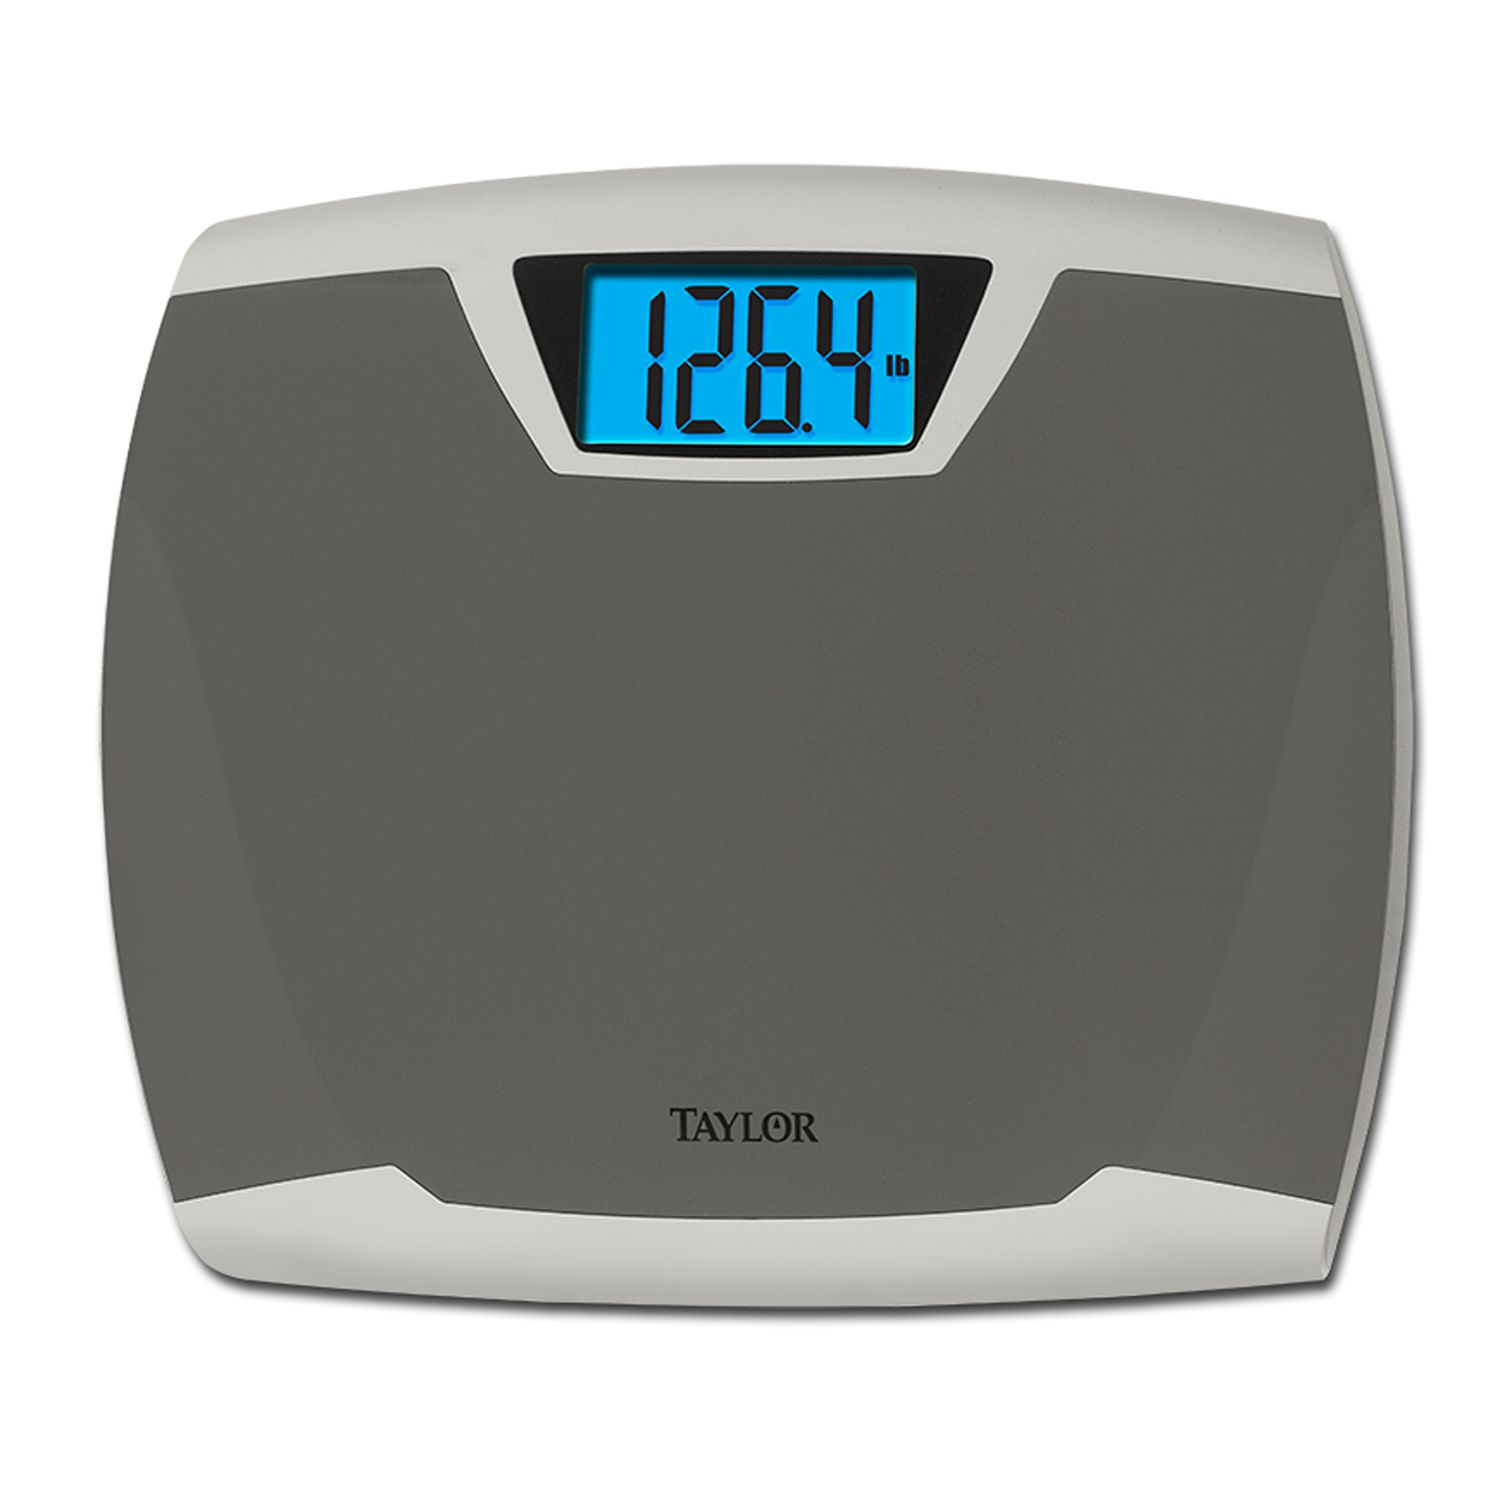 Lovely Taylor Digital Bathroom Scale